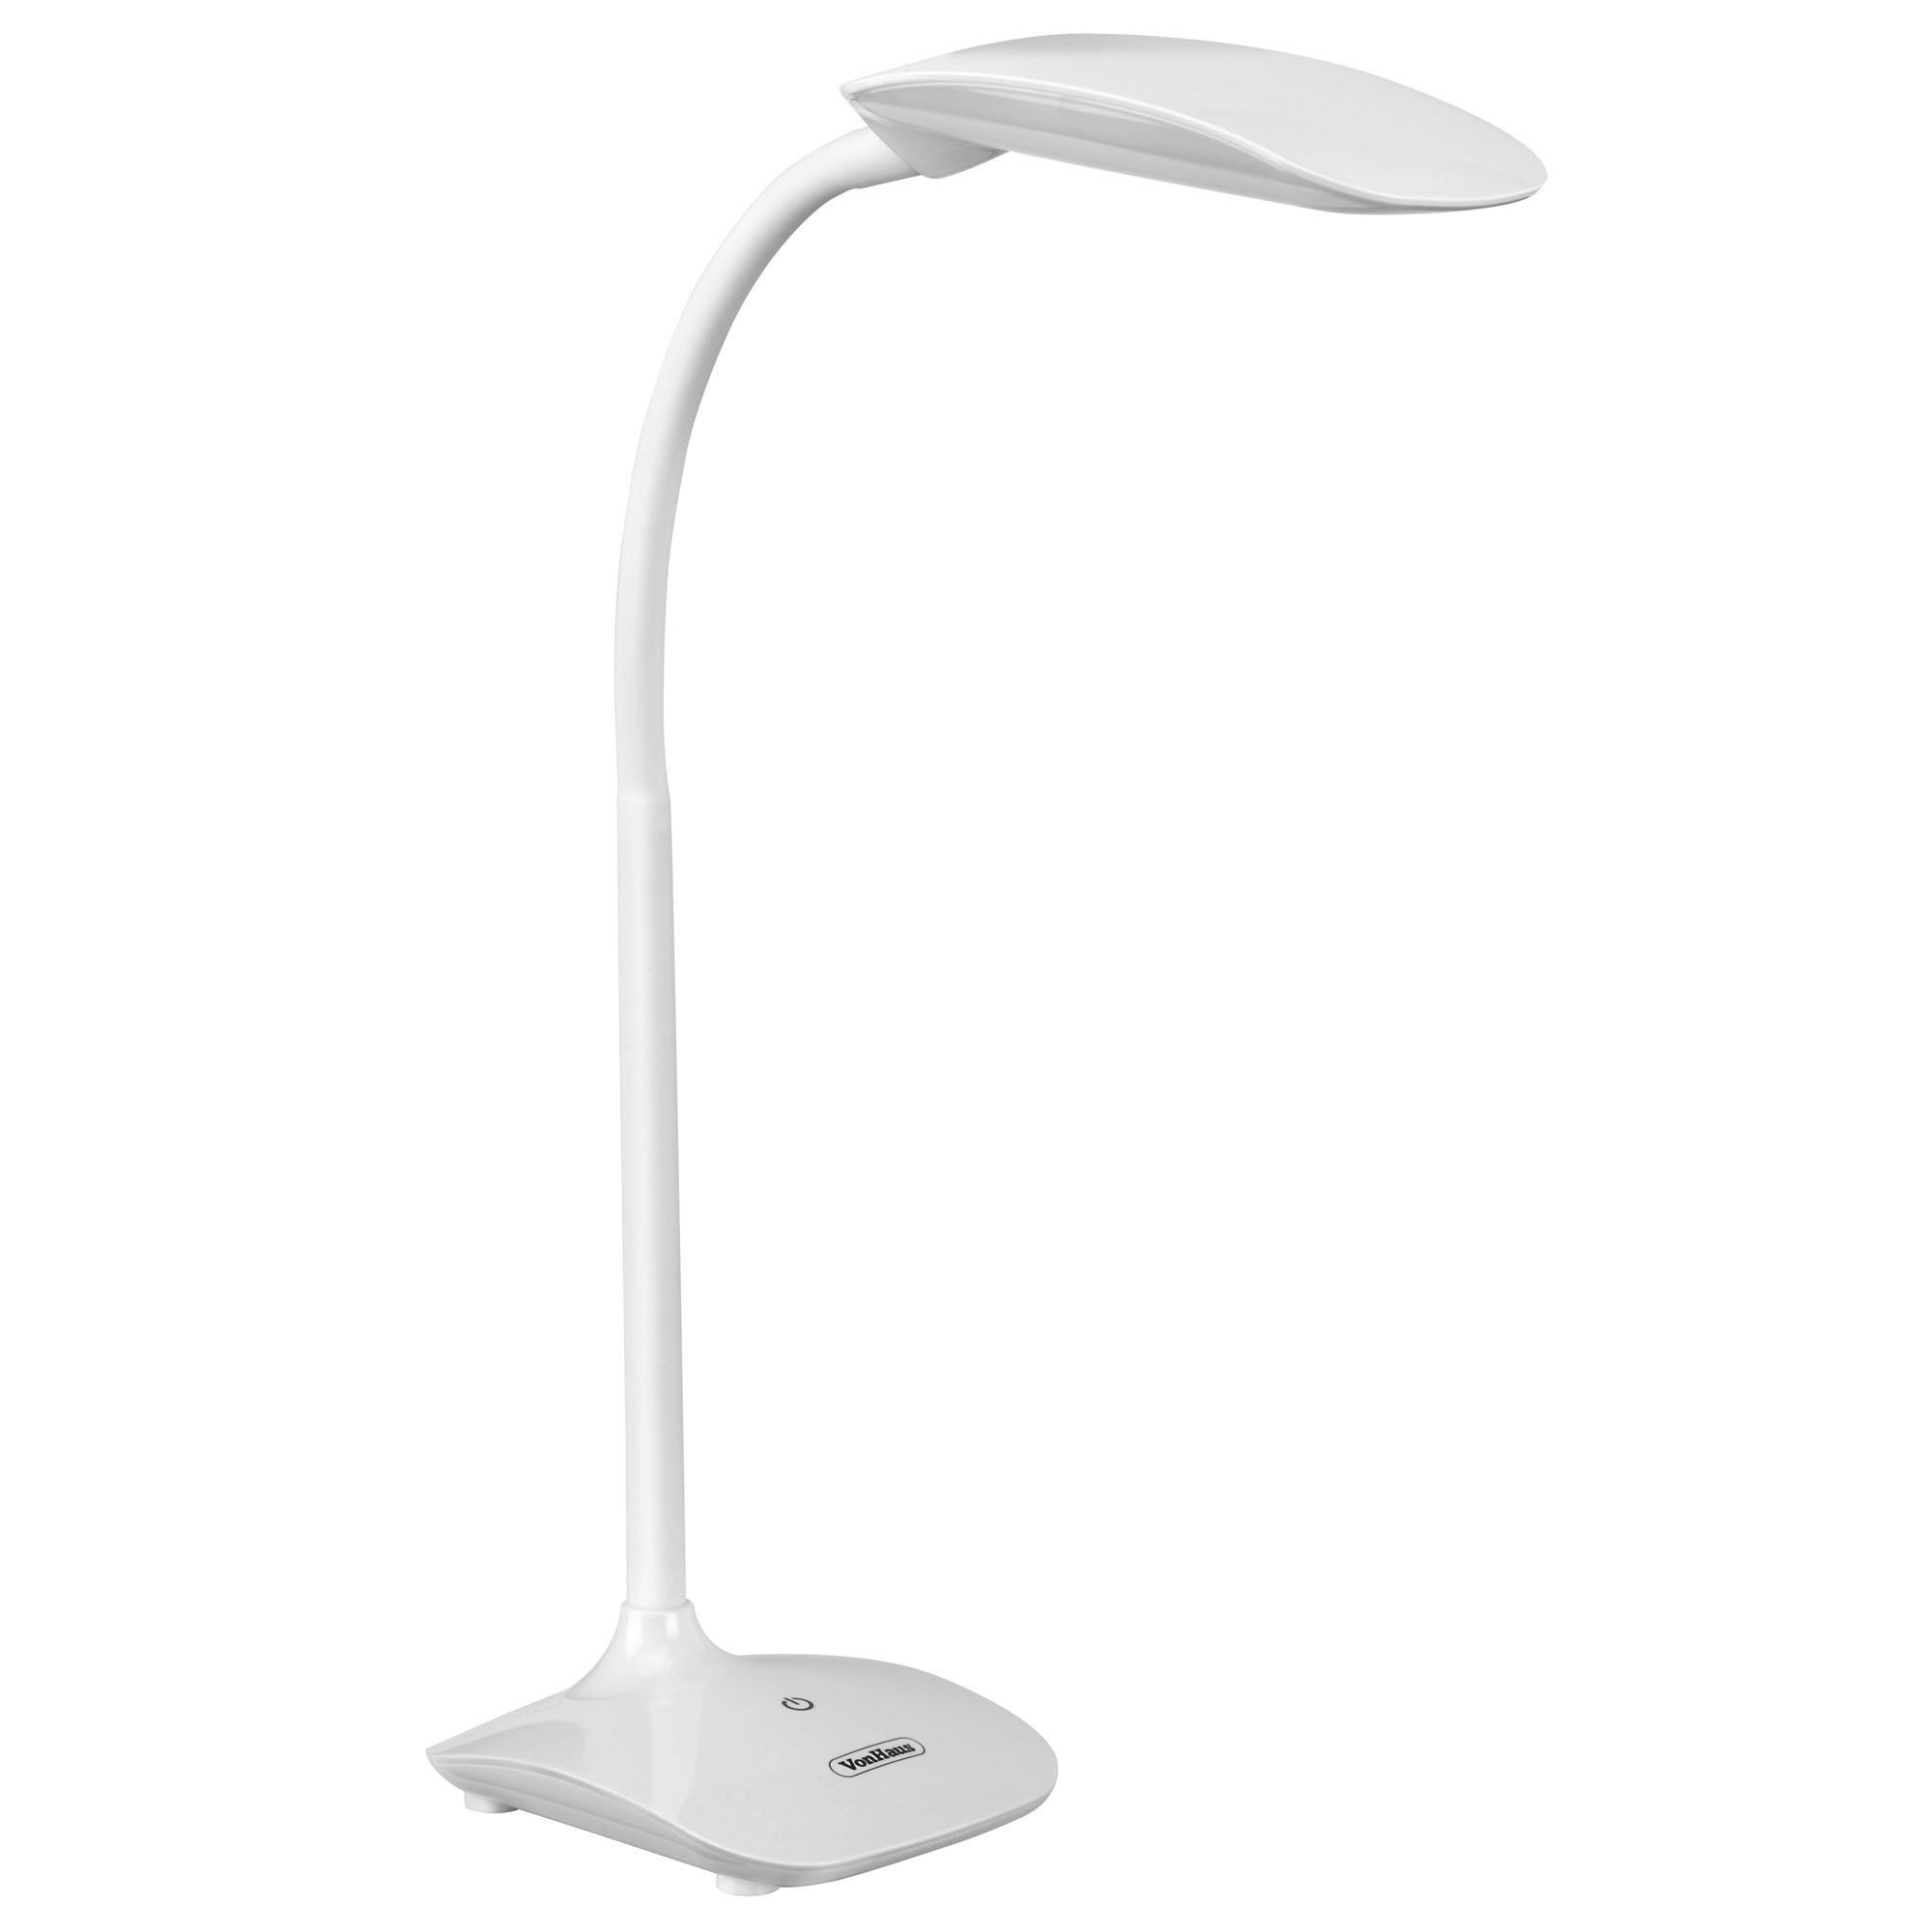 Intertek Lamp: Amazon.com on intertek led lamps, london floor lamps, philips floor lamps, walmart floor lamps, cheap floor lamps, shell floor lamps, better homes and gardens floor lamps, target floor lamps,